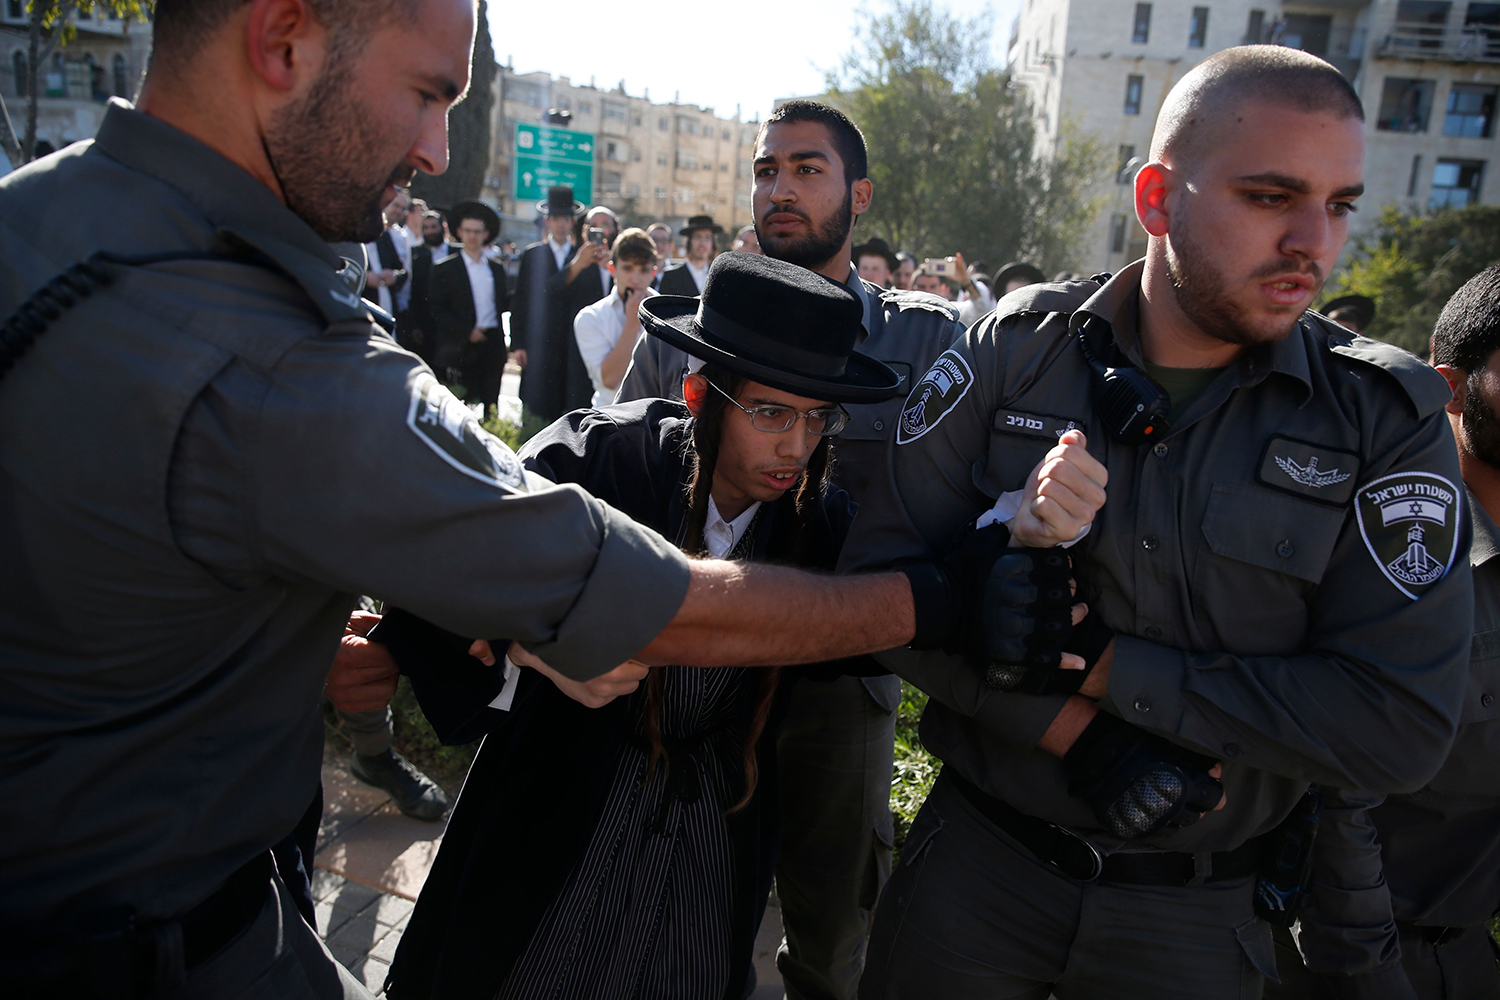 TOPSHOT - Members of the Israeli security forces detain an ultra-Orthodox Jew during a demonstration against Israeli army conscription in Jerusalem on October 26, 2017. Earlier in the week several thousand ultra-Orthodox Jews blocked the main entrance to Jerusalem and protested in other areas as part of a series of demonstrations against serving in the Israeli military. / AFP PHOTO / AHMAD GHARABLI        (Photo credit should read AHMAD GHARABLI/AFP/Getty Images)